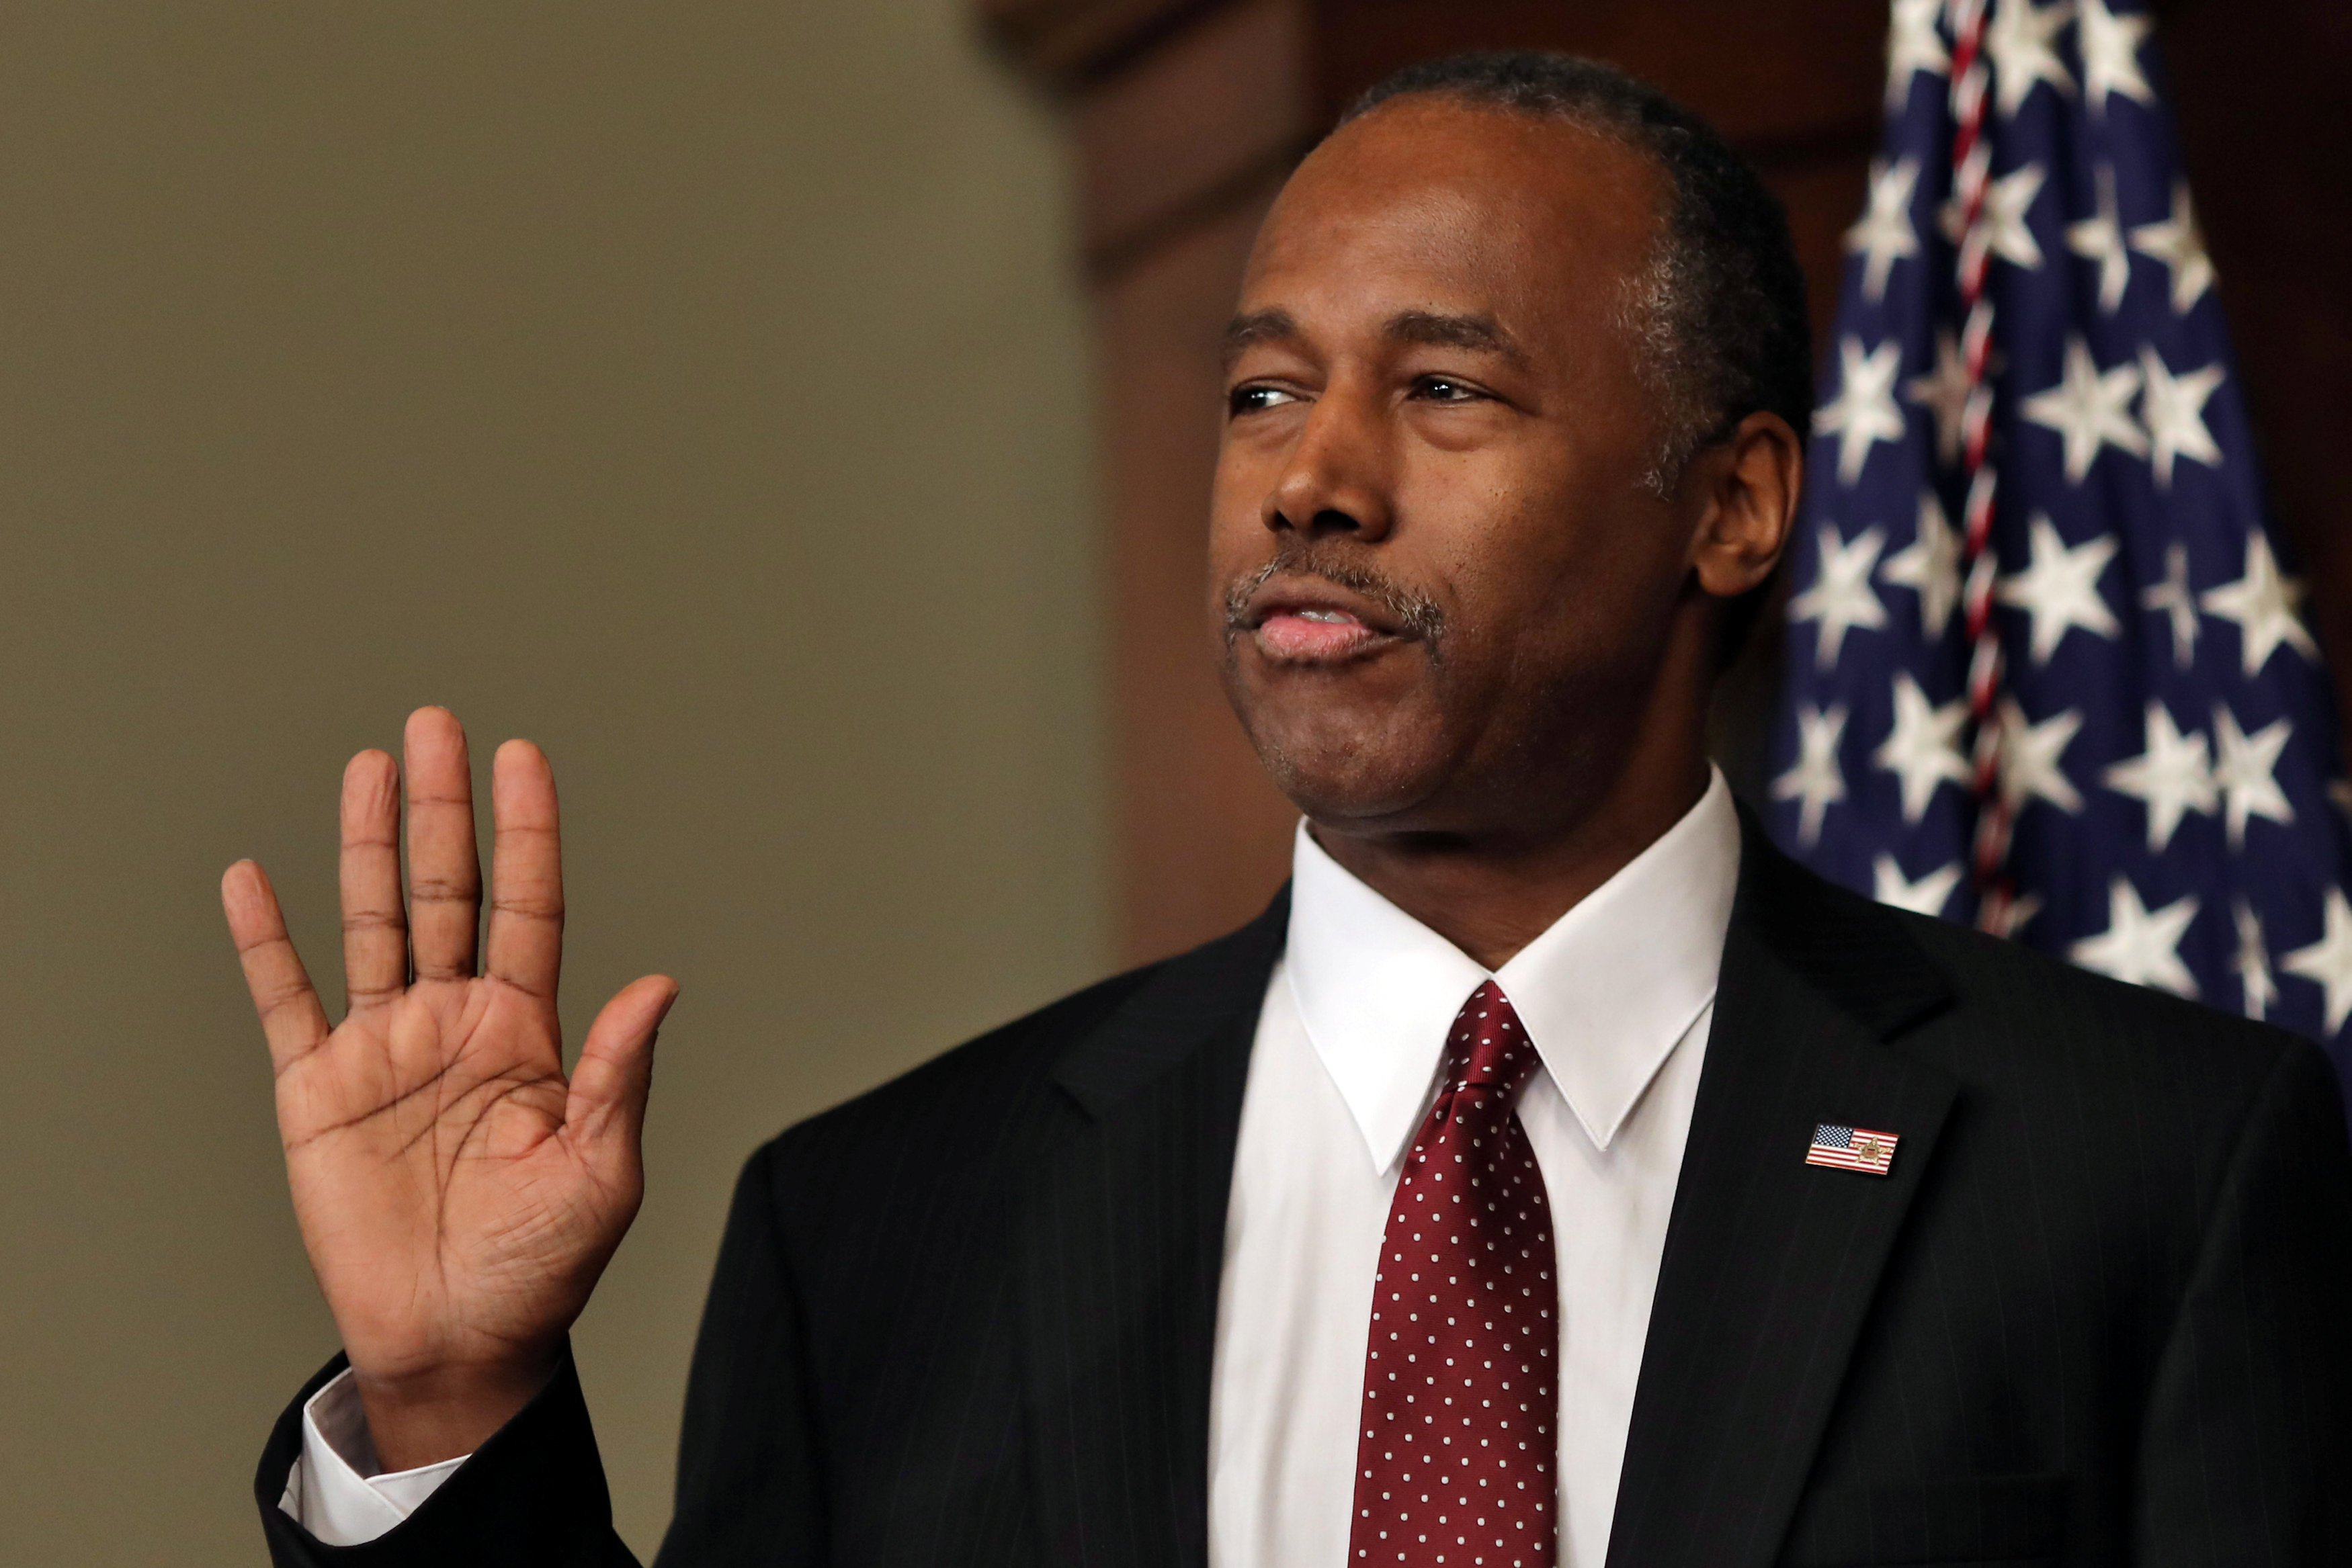 Sworn in as HUDs Newest Secretary Dr Ben Carson Vows to Heal